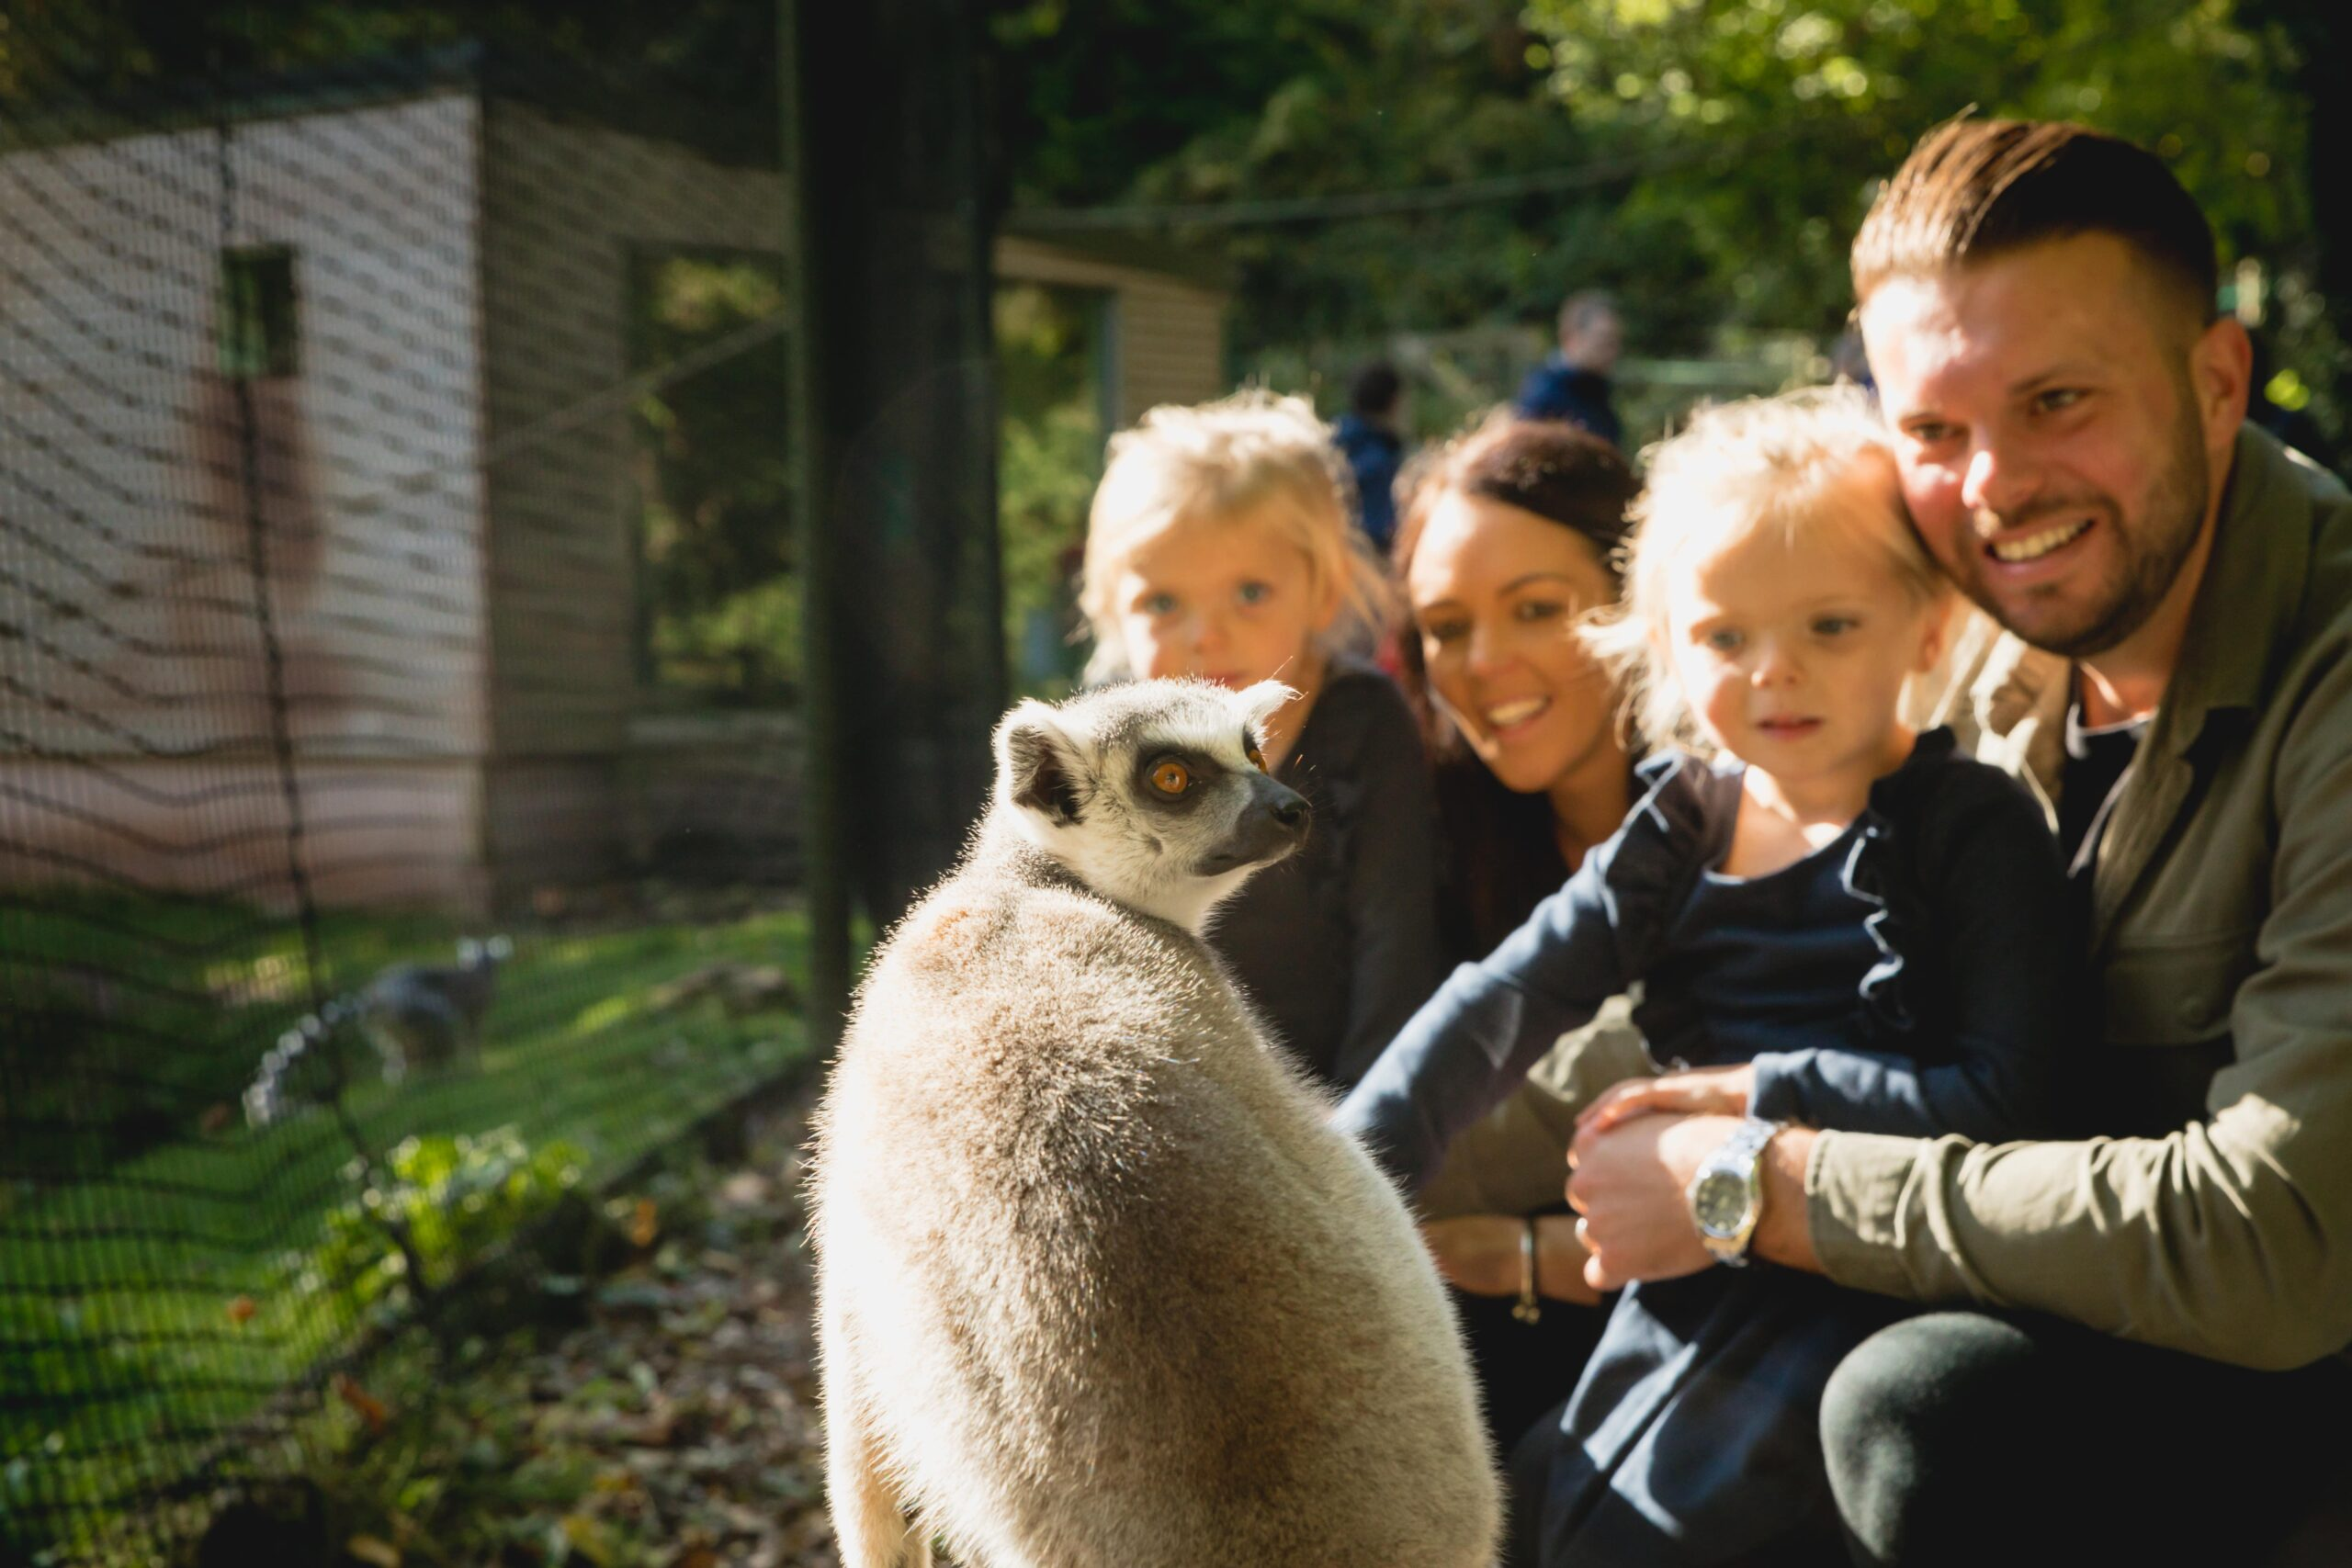 Family in lemur Wood at Paignton Zoo